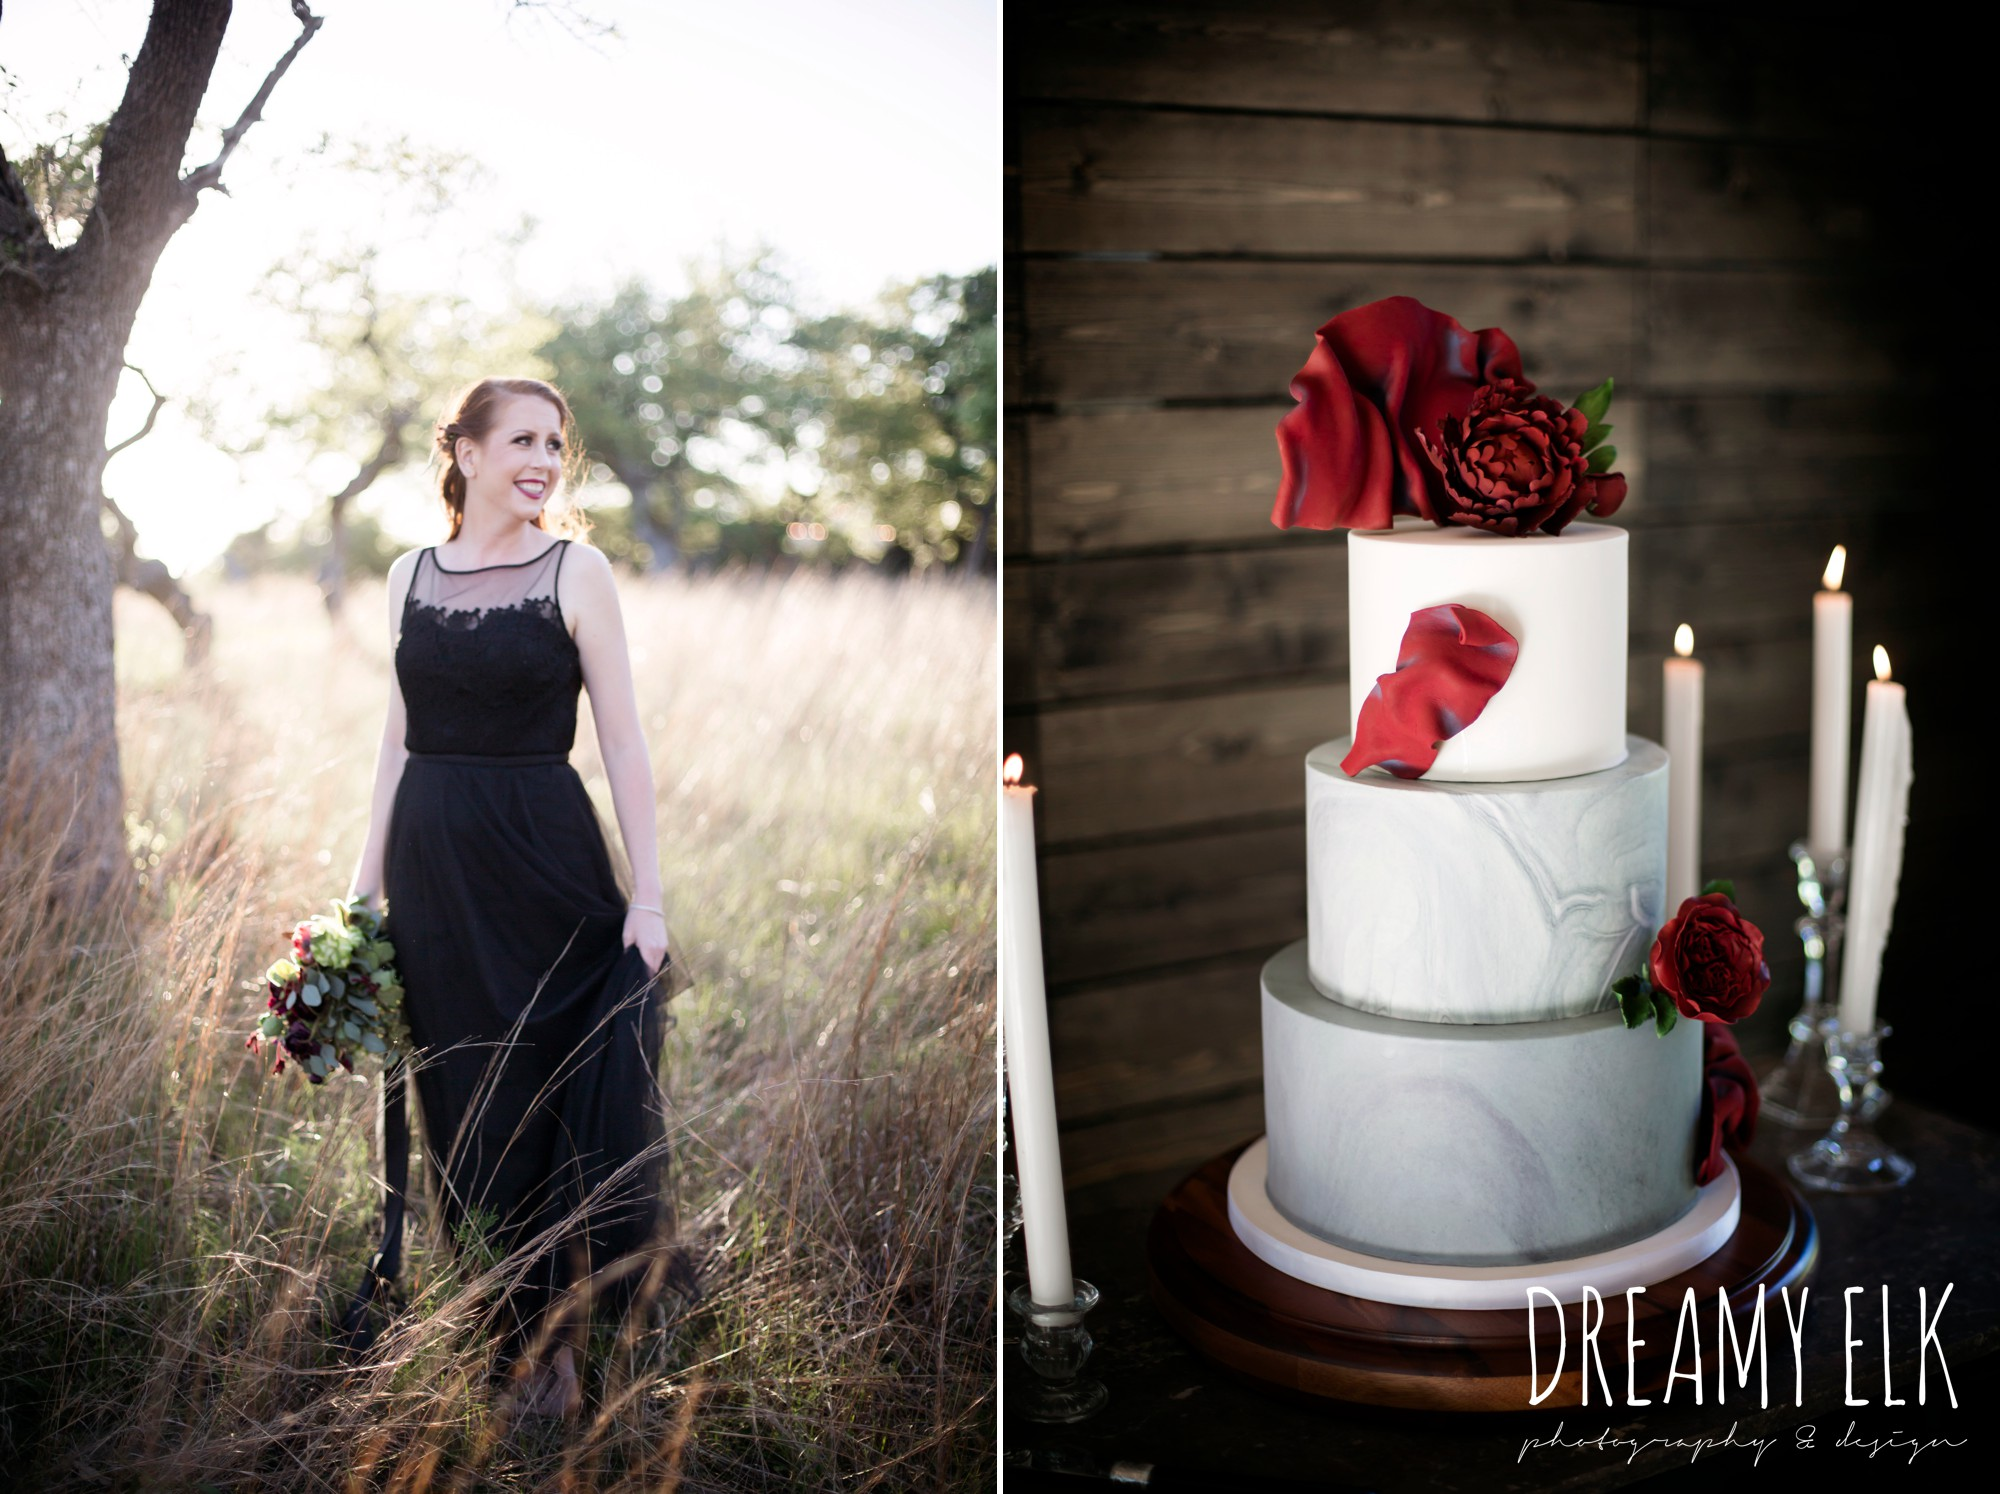 the cedars ranch, libby cole creations, saint isabel bridal, melange bridal, glam gone good, iced cakes and confections, moody rich delicate marfa inspired burgundy maroon black white spring styled wedding photo shoot {dreamy elk photography and design}